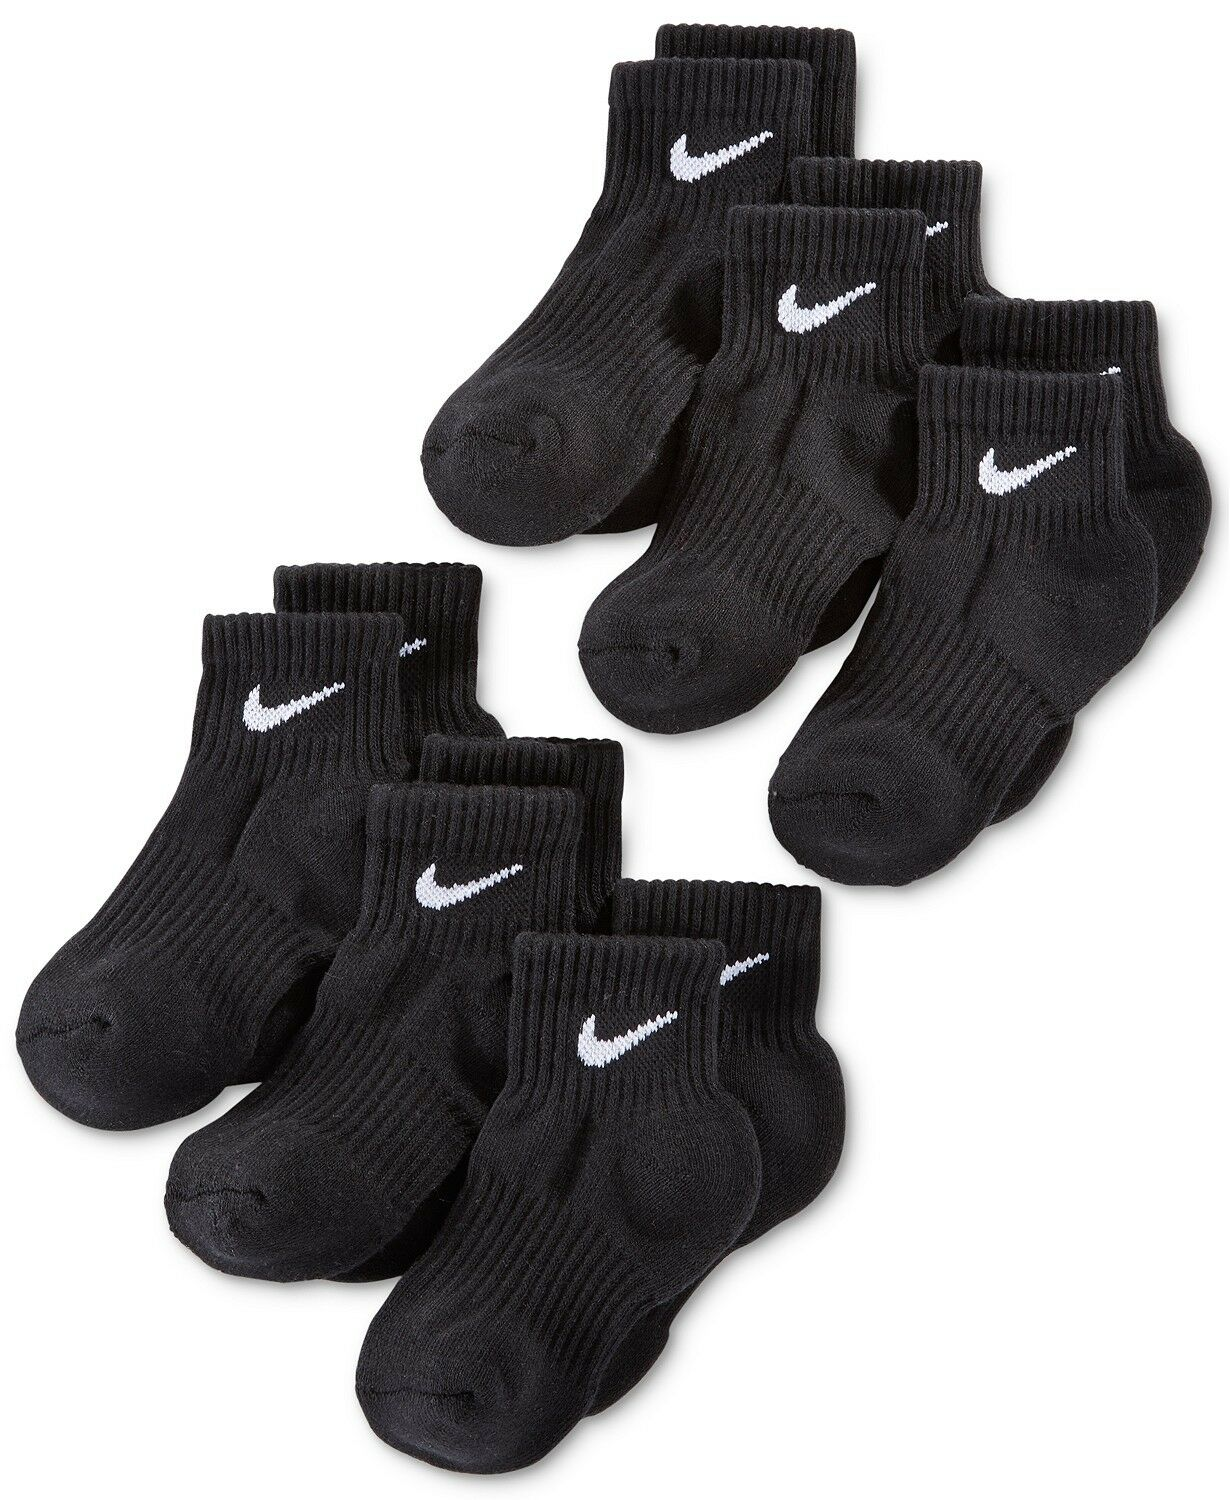 Nike Kids Socks, Boys 6-Pack Quarter Length Socks